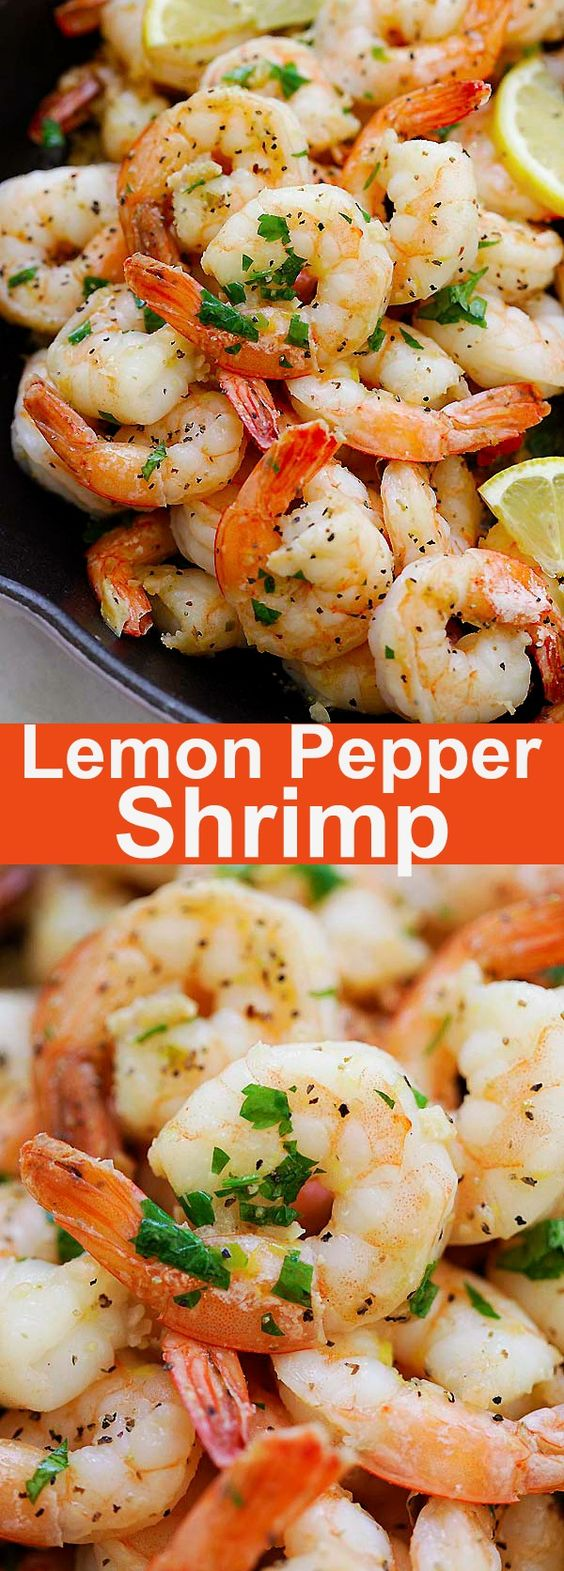 Lemon Pepper Shrimp - easy and flavorful recipe in 15 minutes. Citrusy and peppery in each bite, the shrimp can be served with pasta or salad.